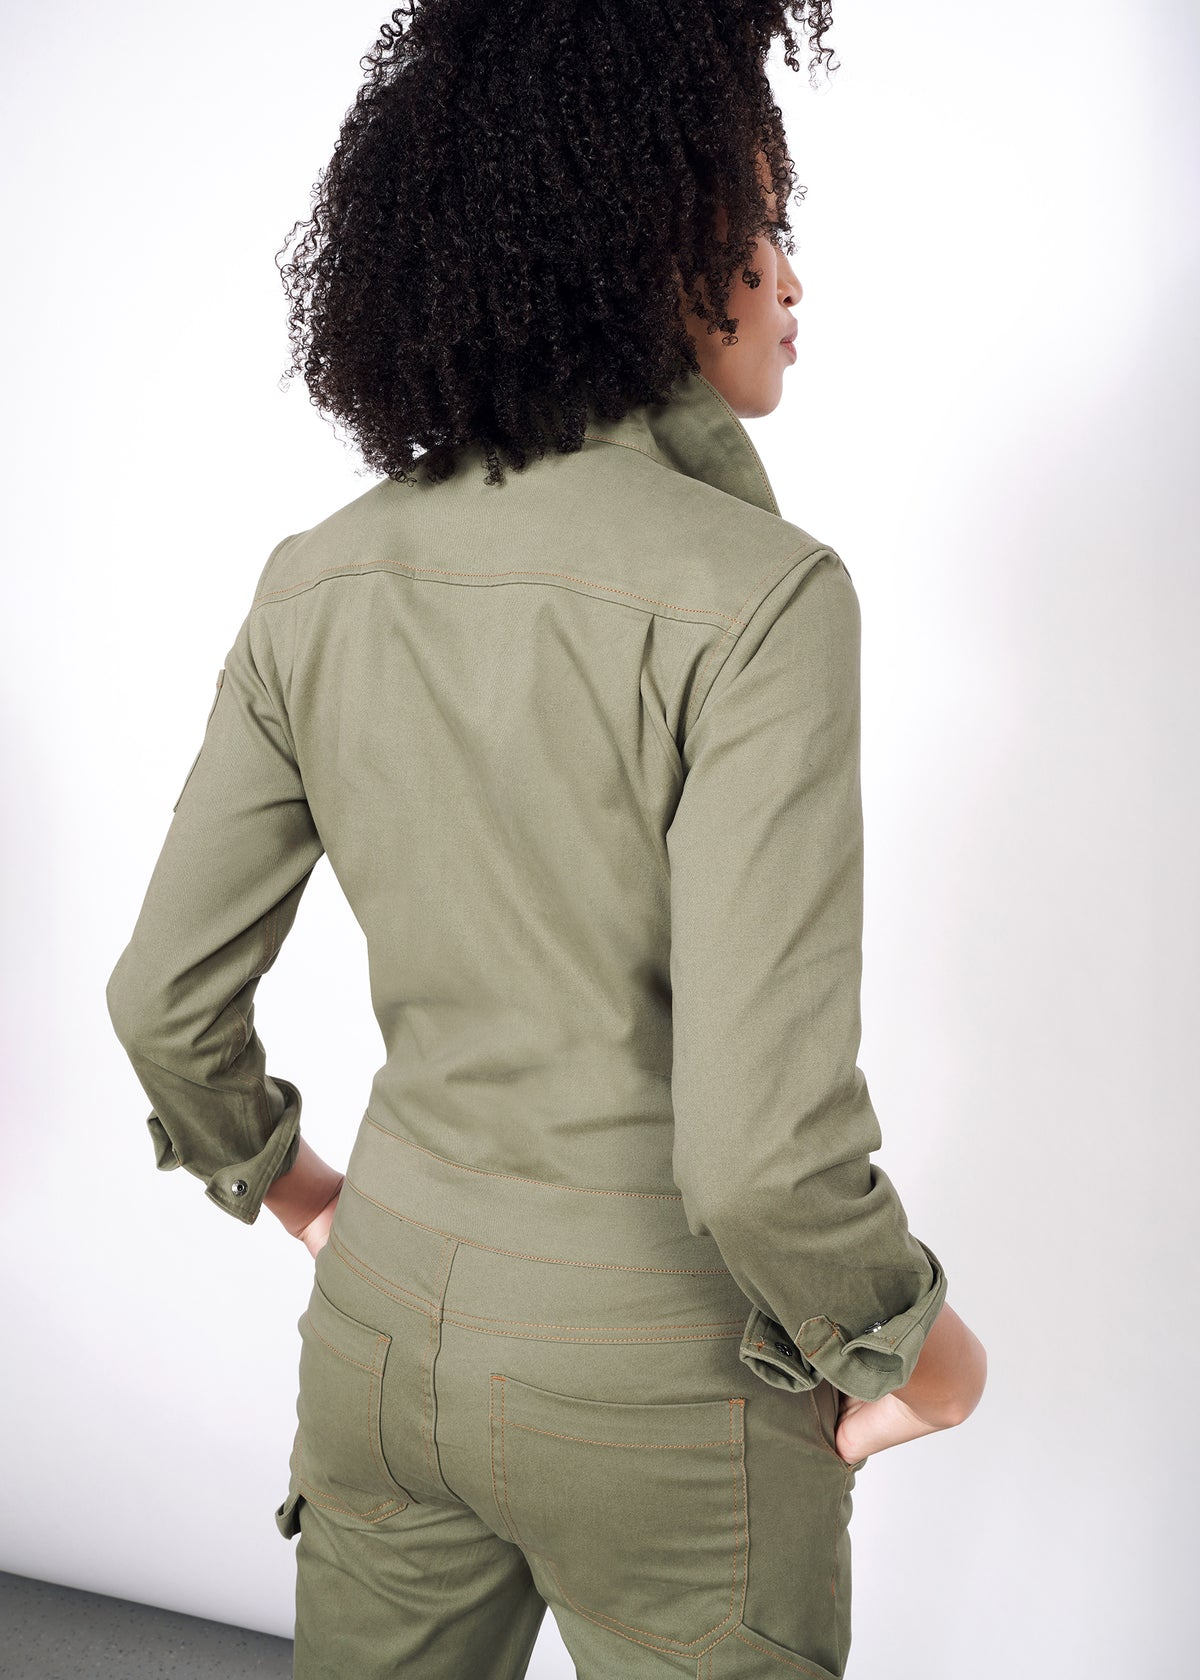 Back of olive coveralls modeled in size small, with sleeves cuffed once